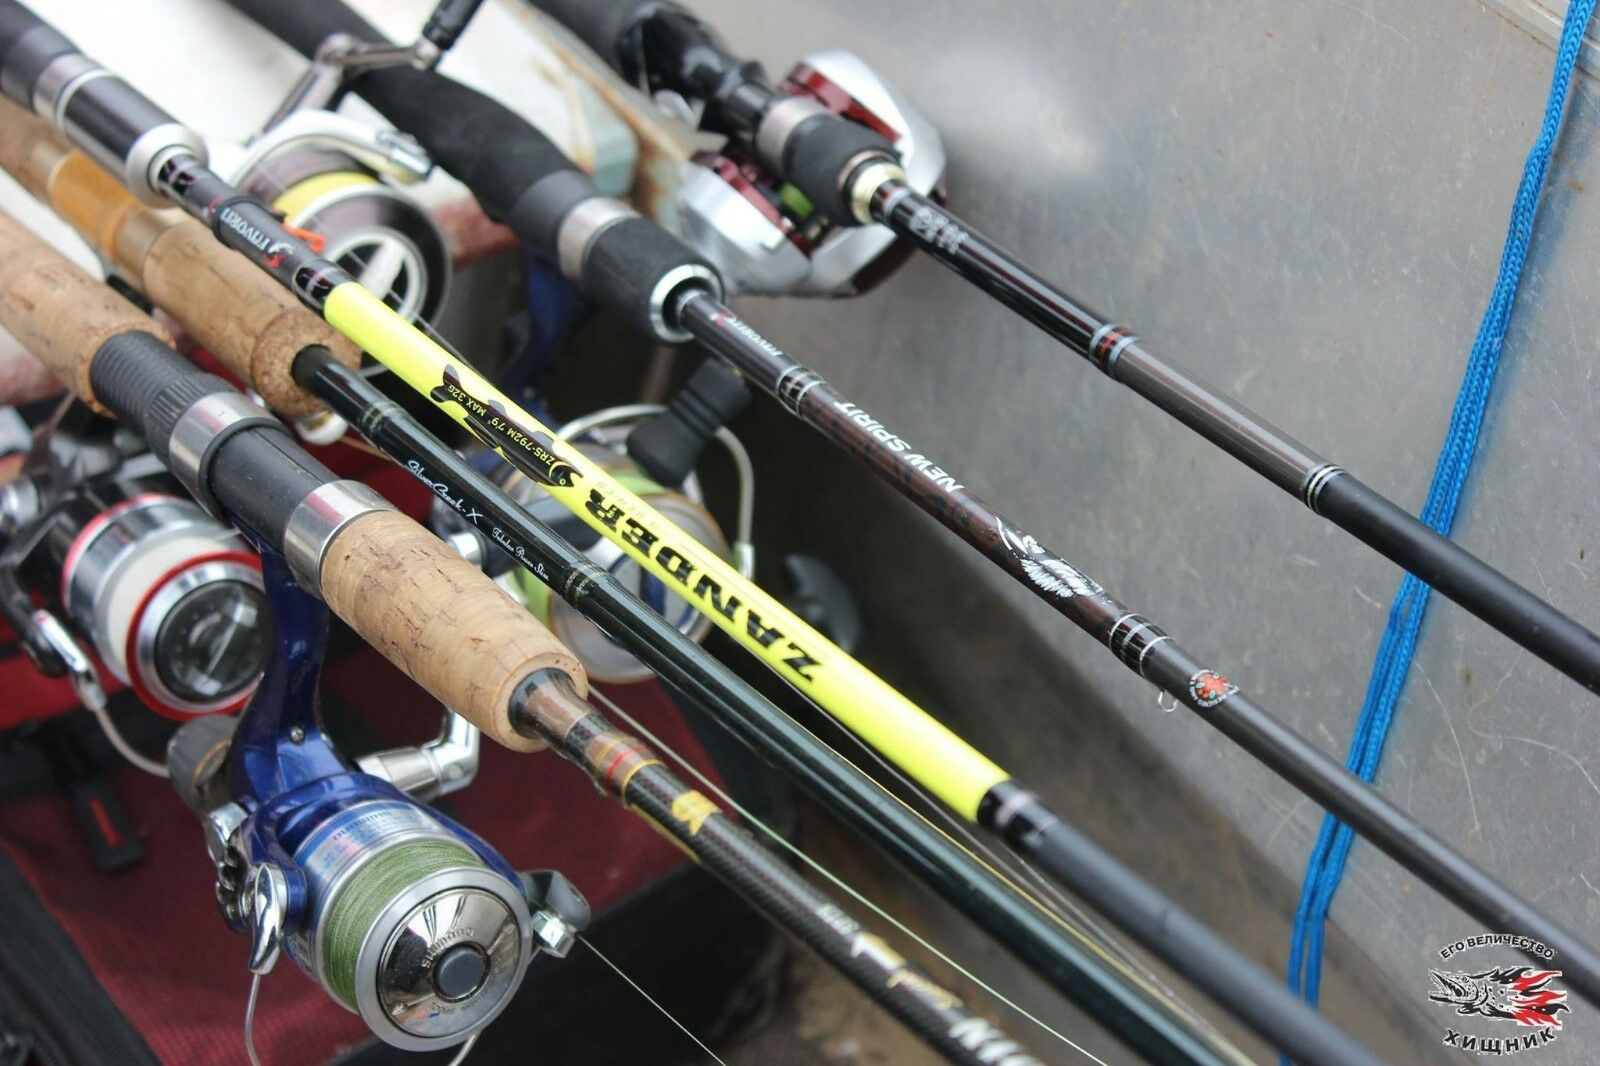 New   Favorite Spinning Rods All models (pike,perch,trout,zander) from  19.99..